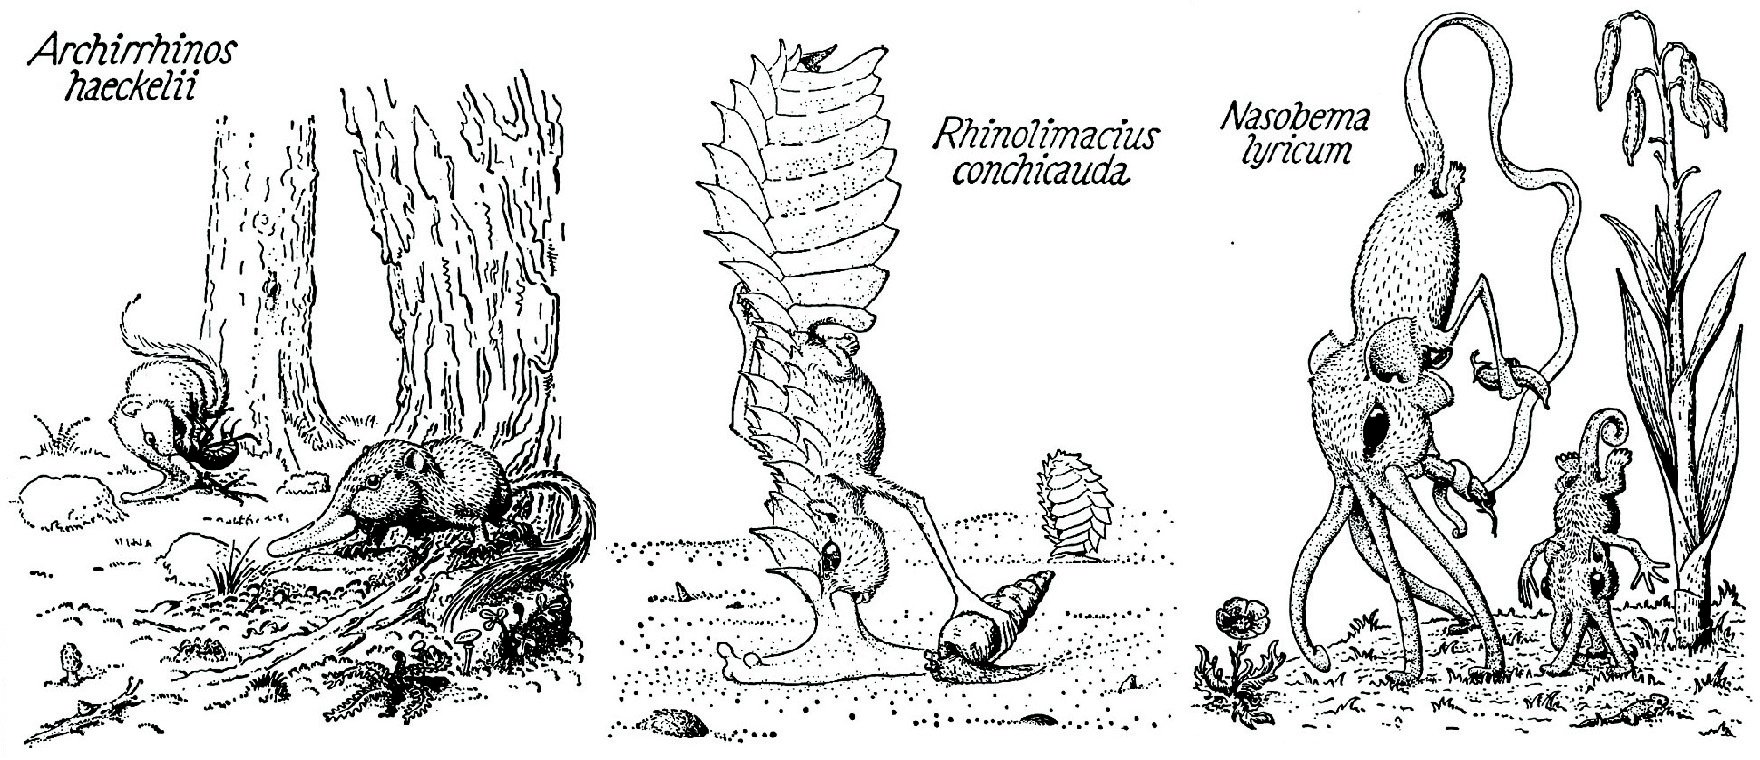 Three snouters: Archirrhinos haeckelii, Rhinolimacius conchicauda, Nasobema lyricum (Order Rhinogradentia), from Stumpke (1961).